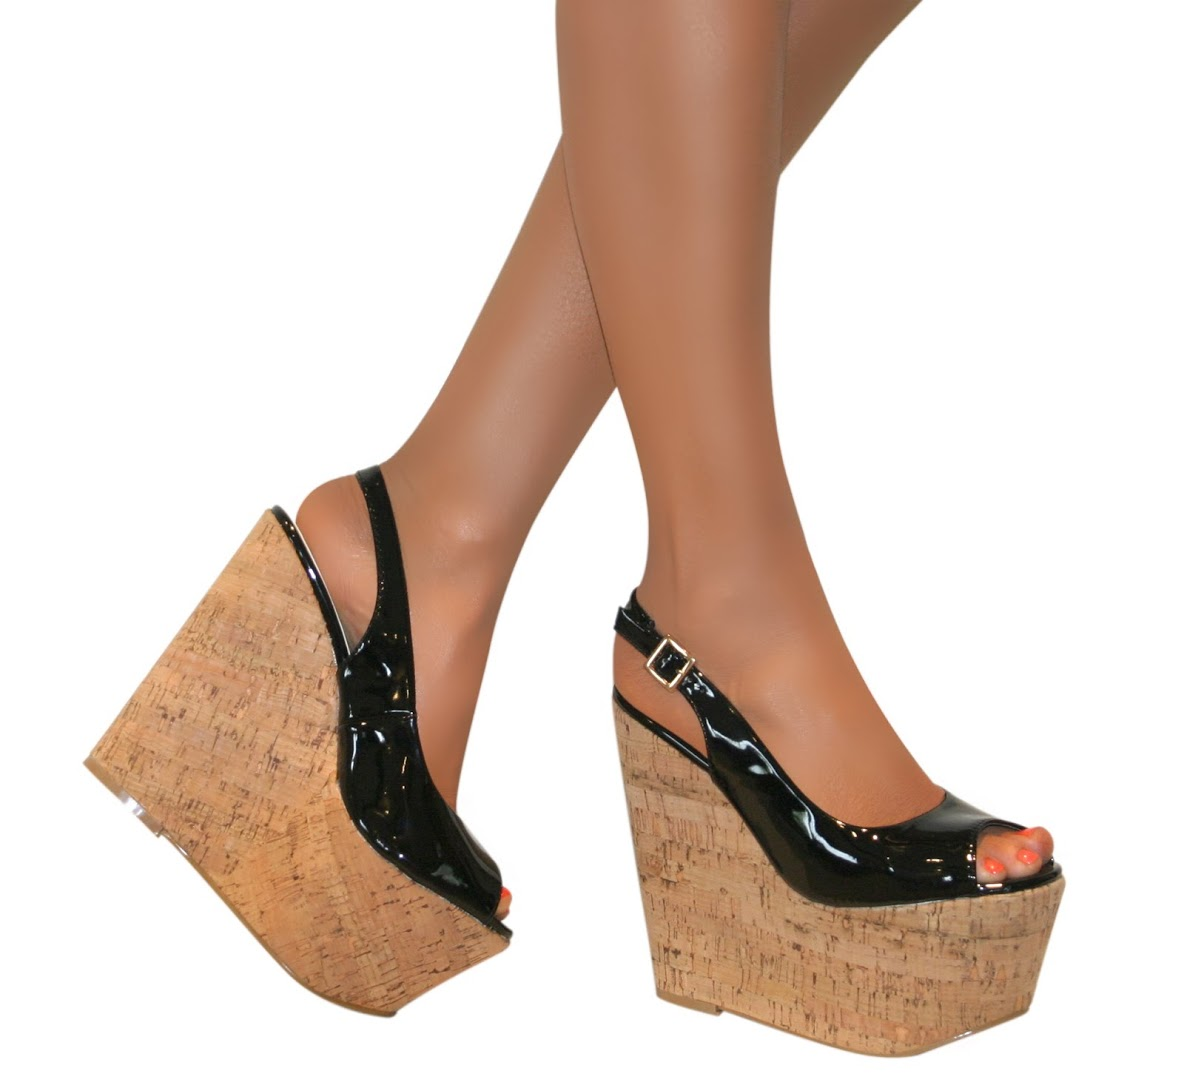 LADIES SLINGBACK PLATFORM PATENT CORK WEDGE HIGH HEEL PEEP ...